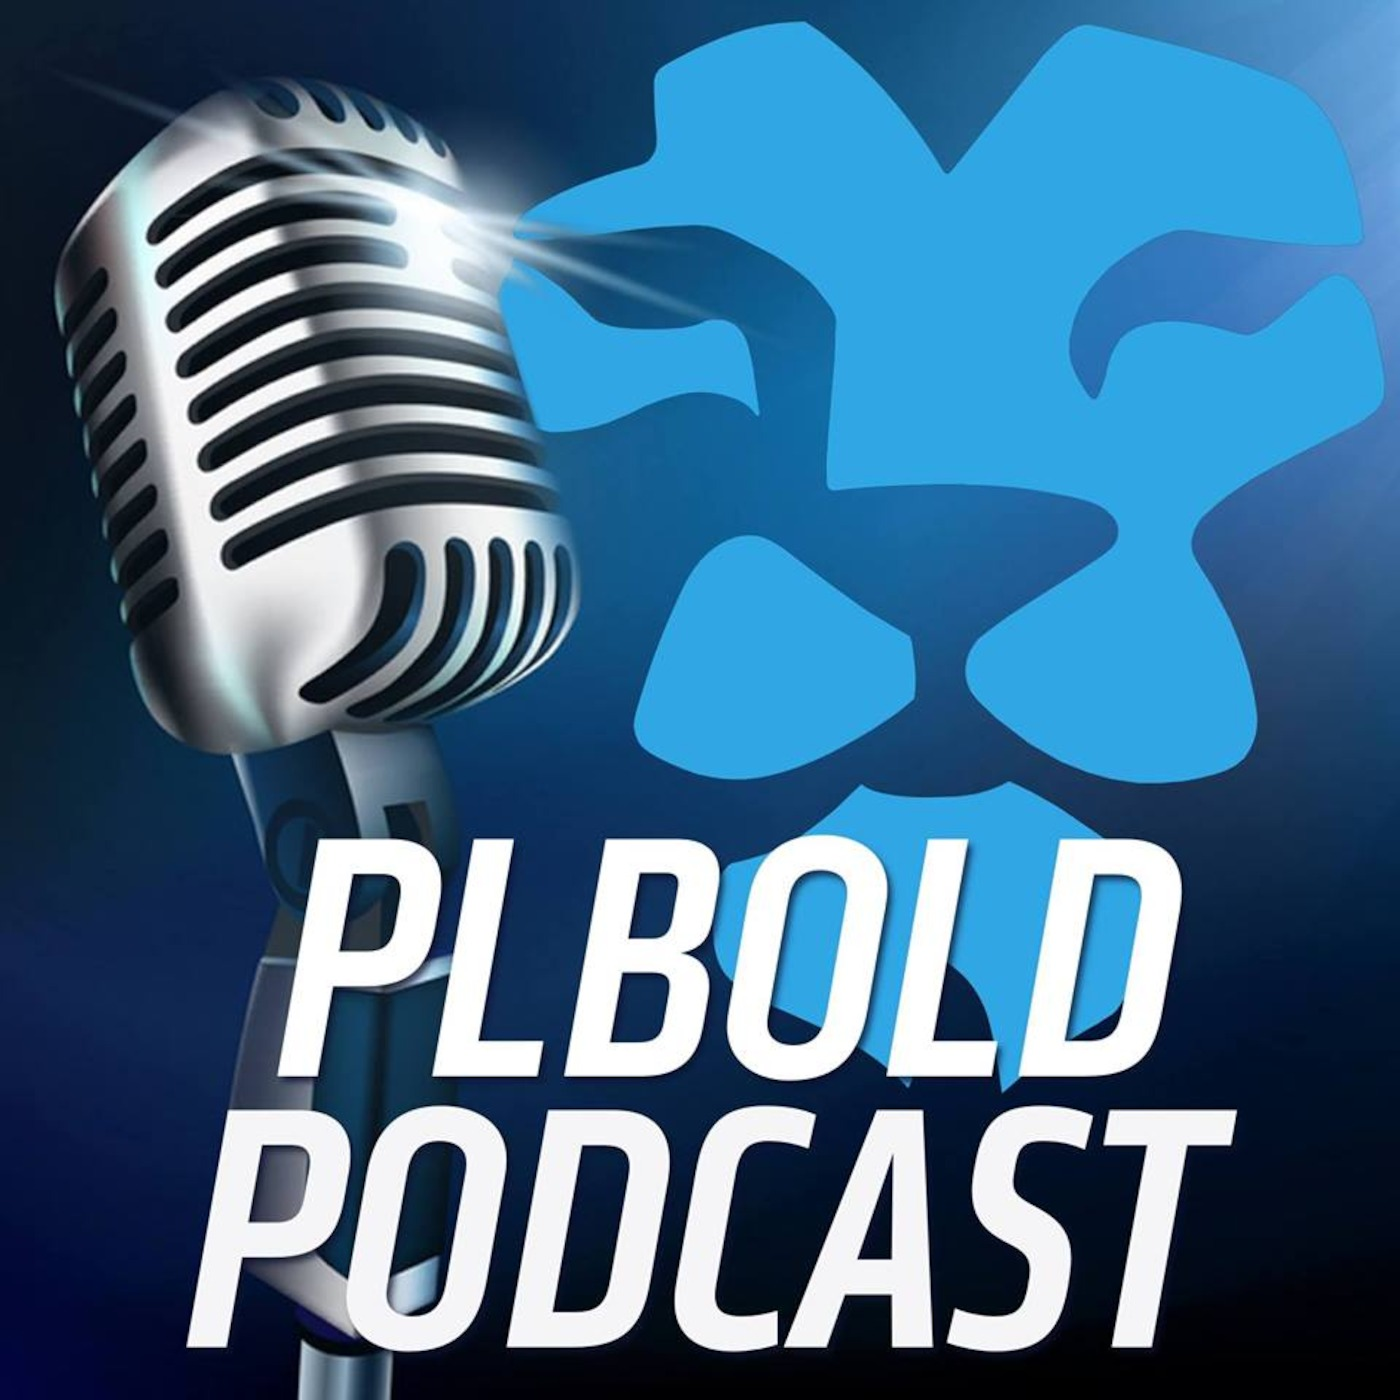 PLBOLD PODCAST / Mediano PL